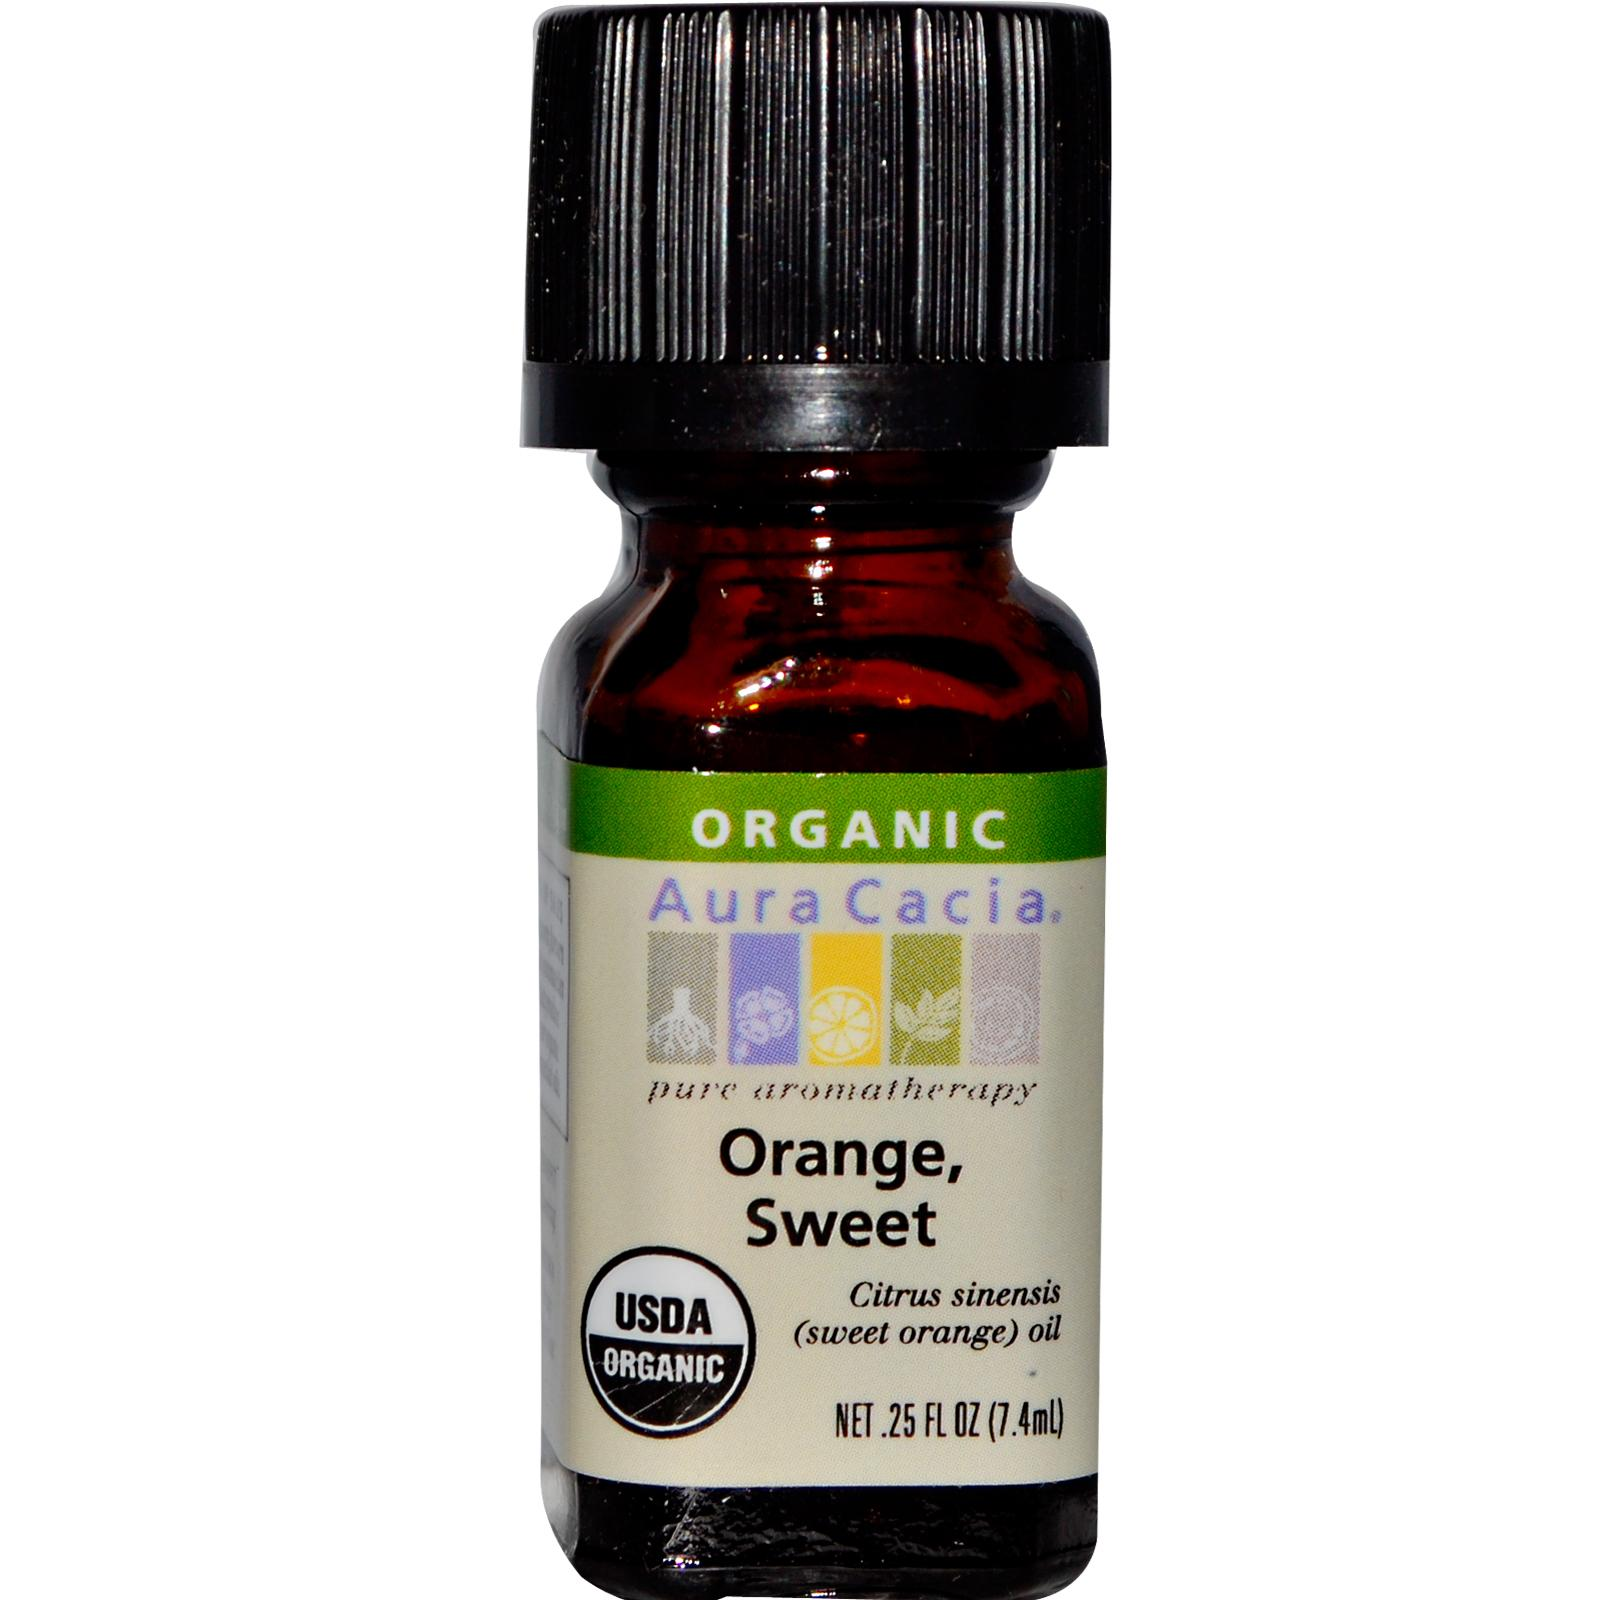 Organic Essential Oil - Aura Cacia - Orange orange organic essential oil